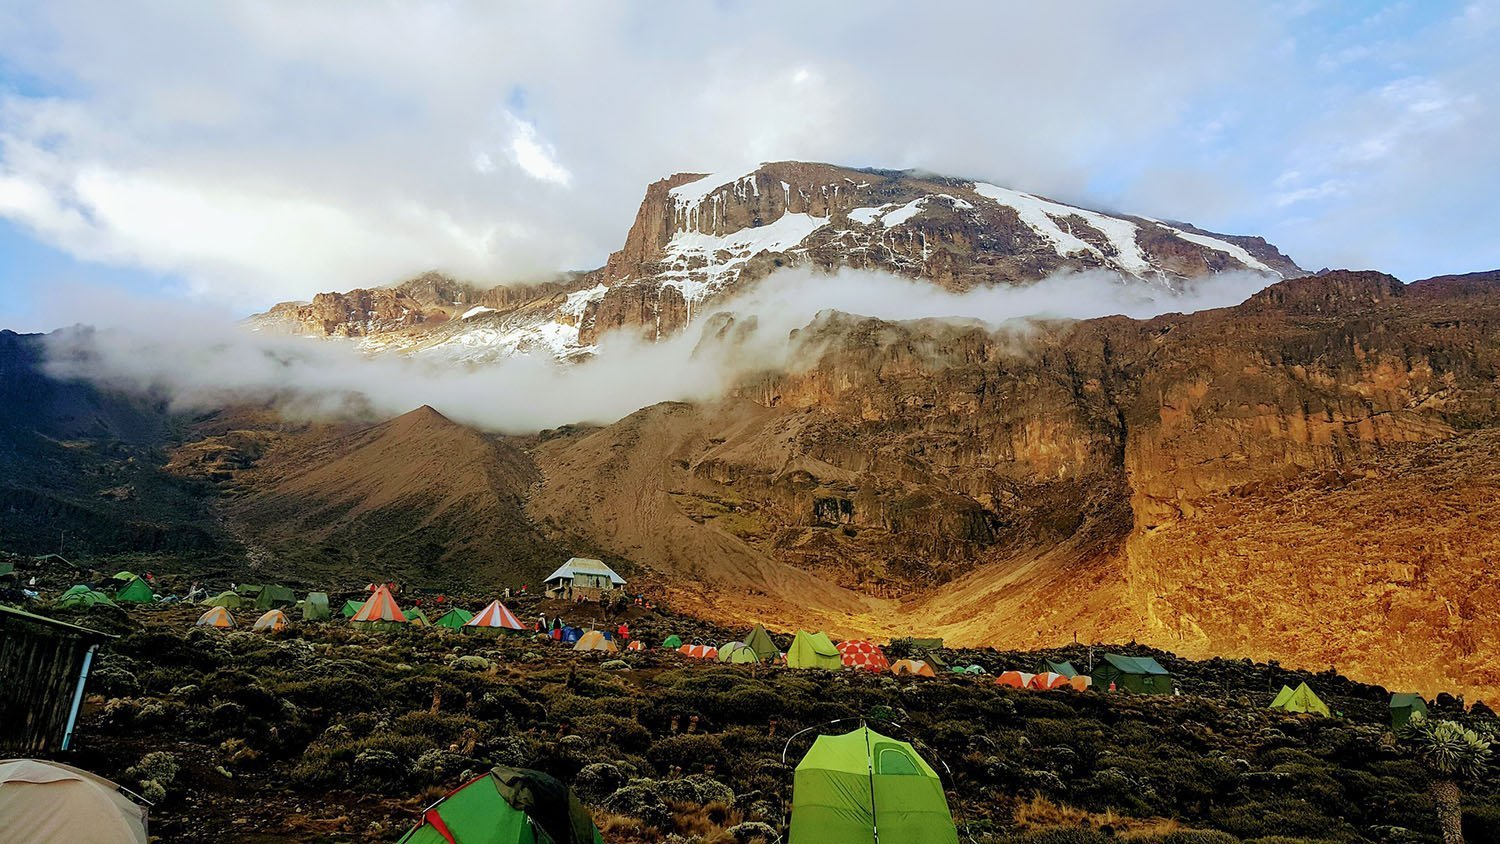 Mountain climbs - Mount Kilimanjaro, Tanzania, trekking - Machame route